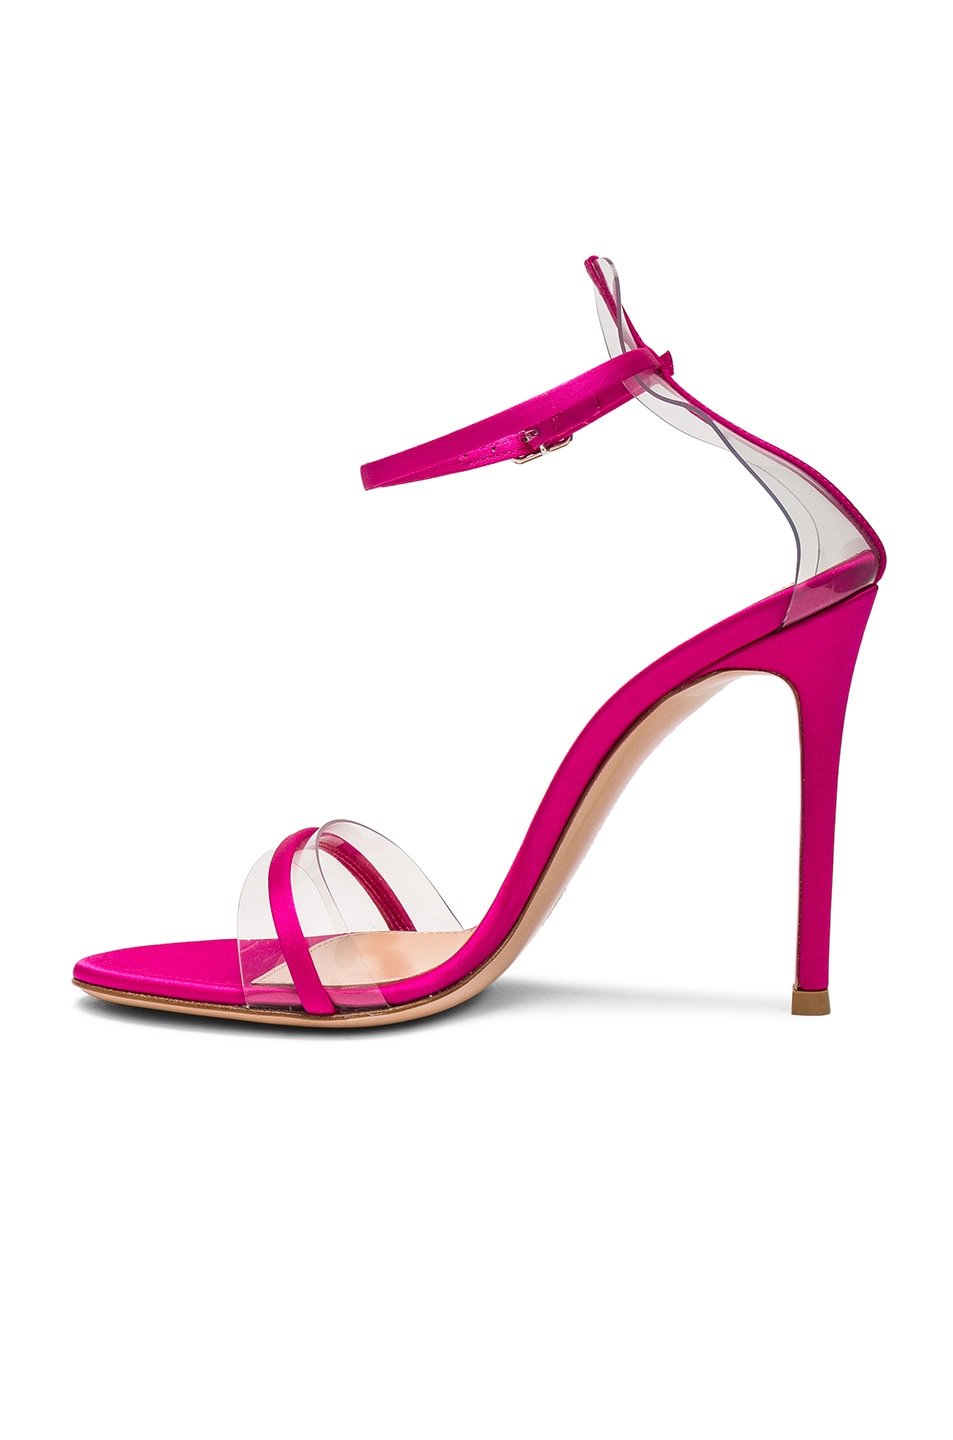 Gianvito Rossi Satin Plexi G String Heels in Fuchsia & Transparent Low Price Fee Shipping Popular And Cheap From China Discount Cheap Online 4XYN72KKMb